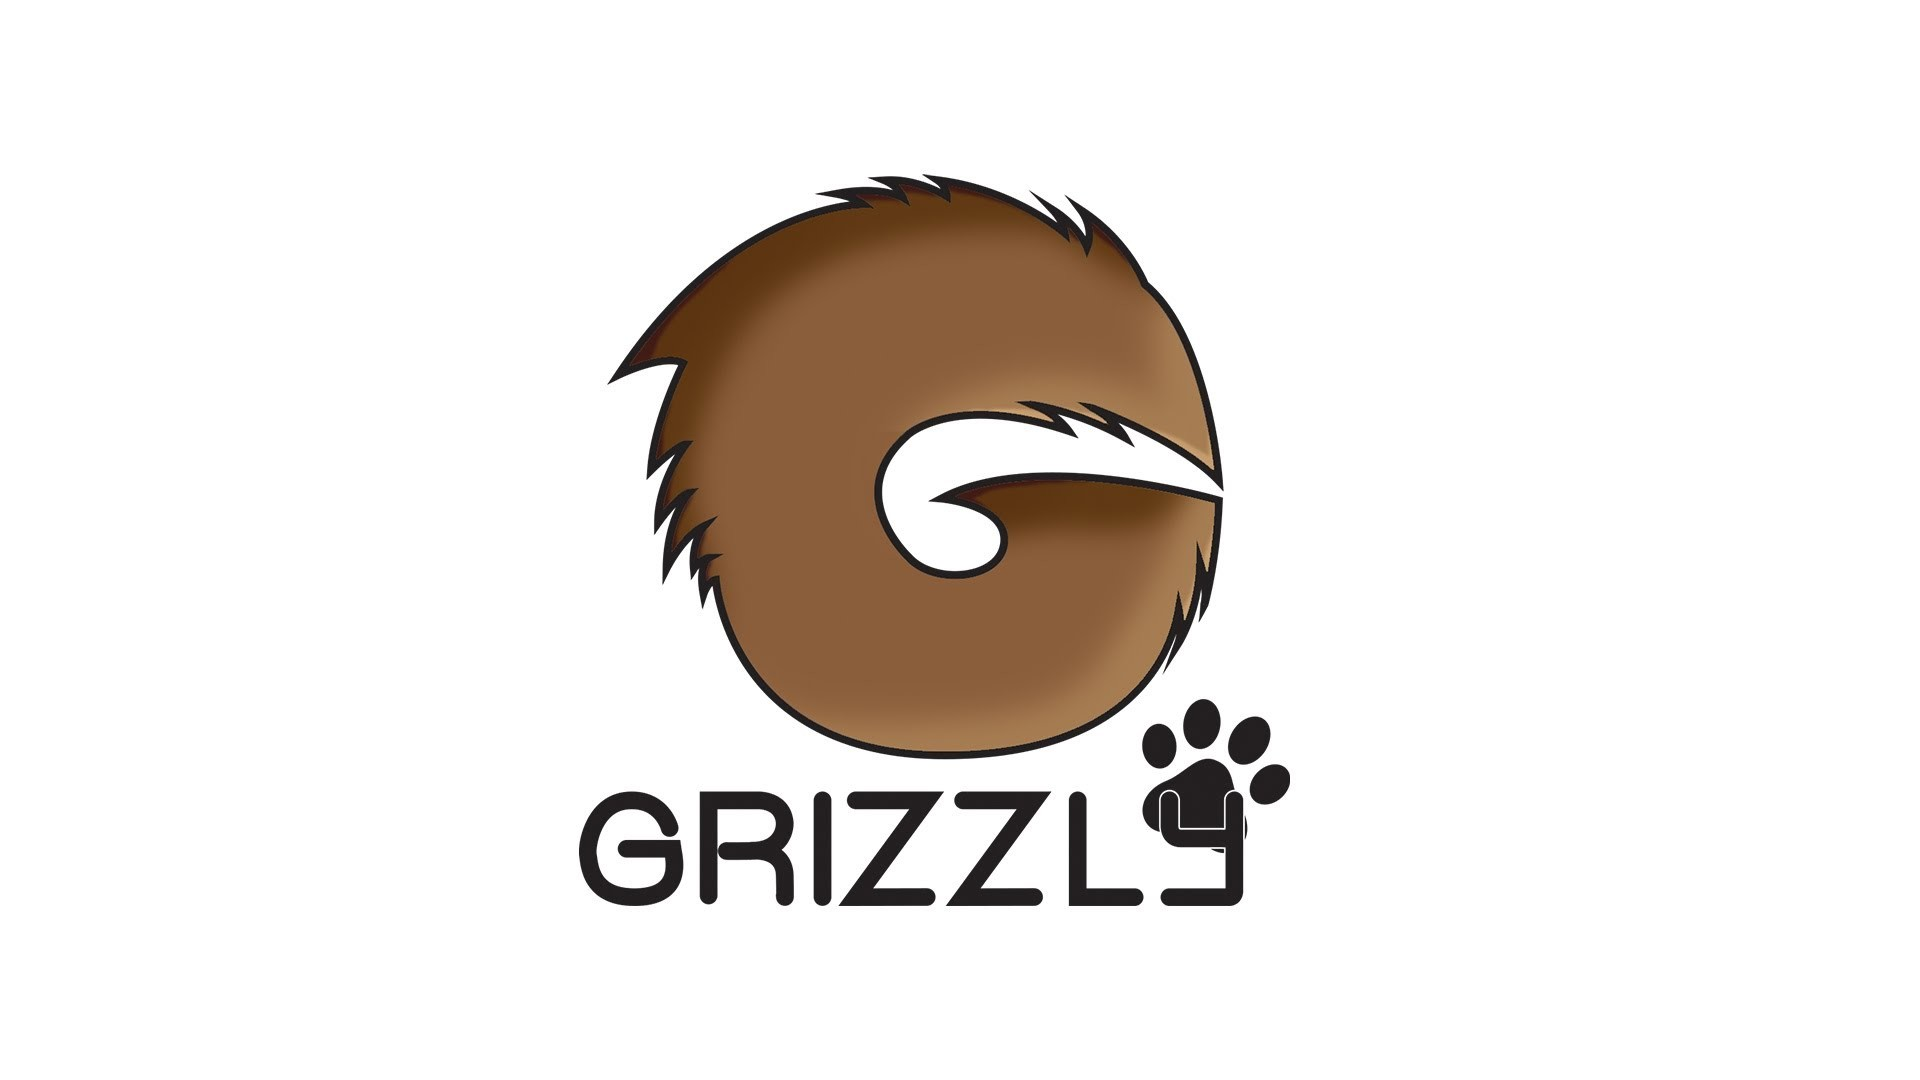 Grizzly Graphic Designs | Grizzly Logo